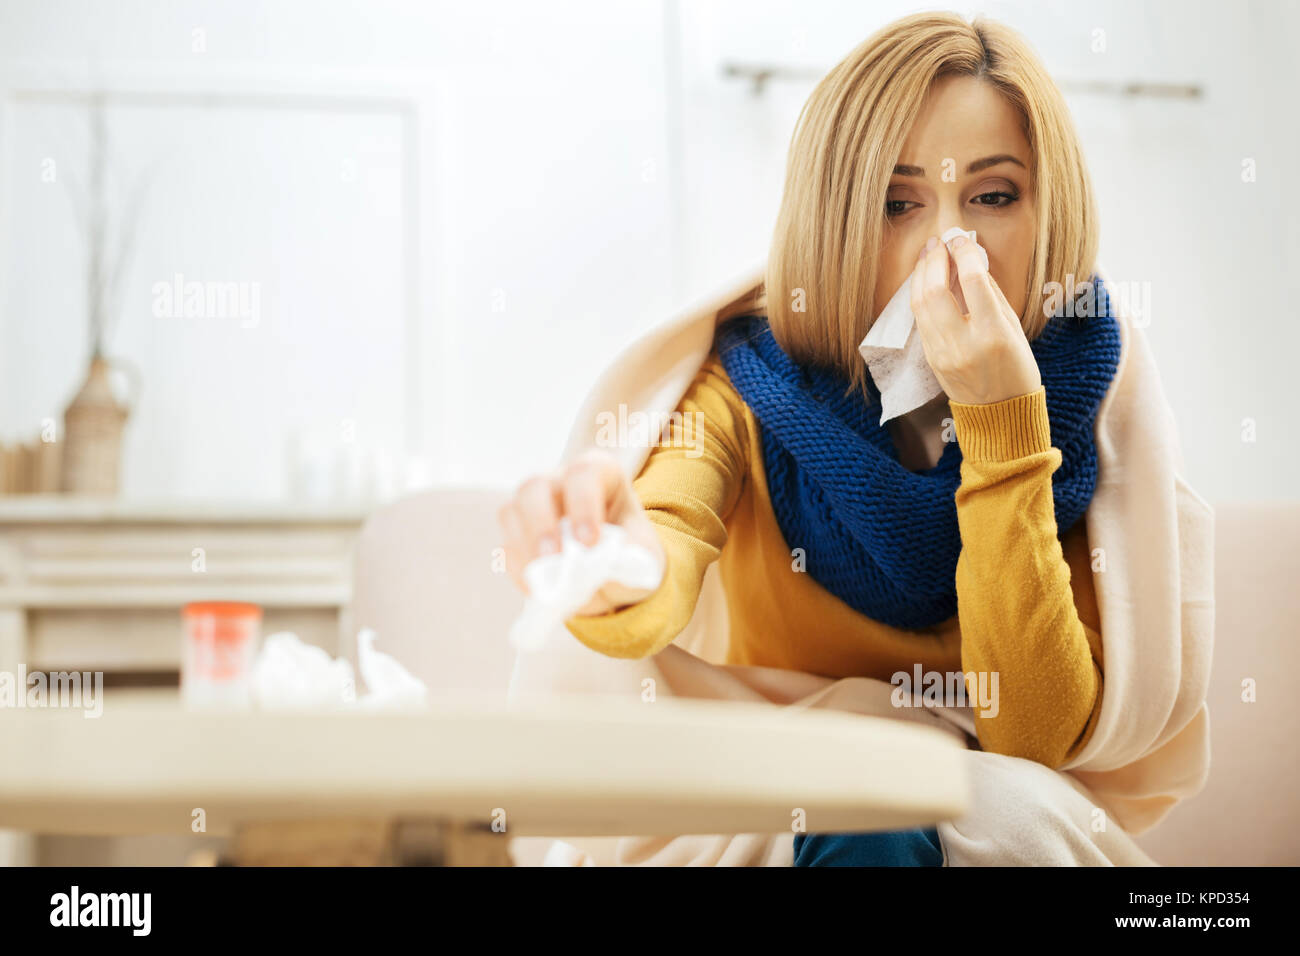 Ill lady feeling bad and sitting on the couch - Stock Image